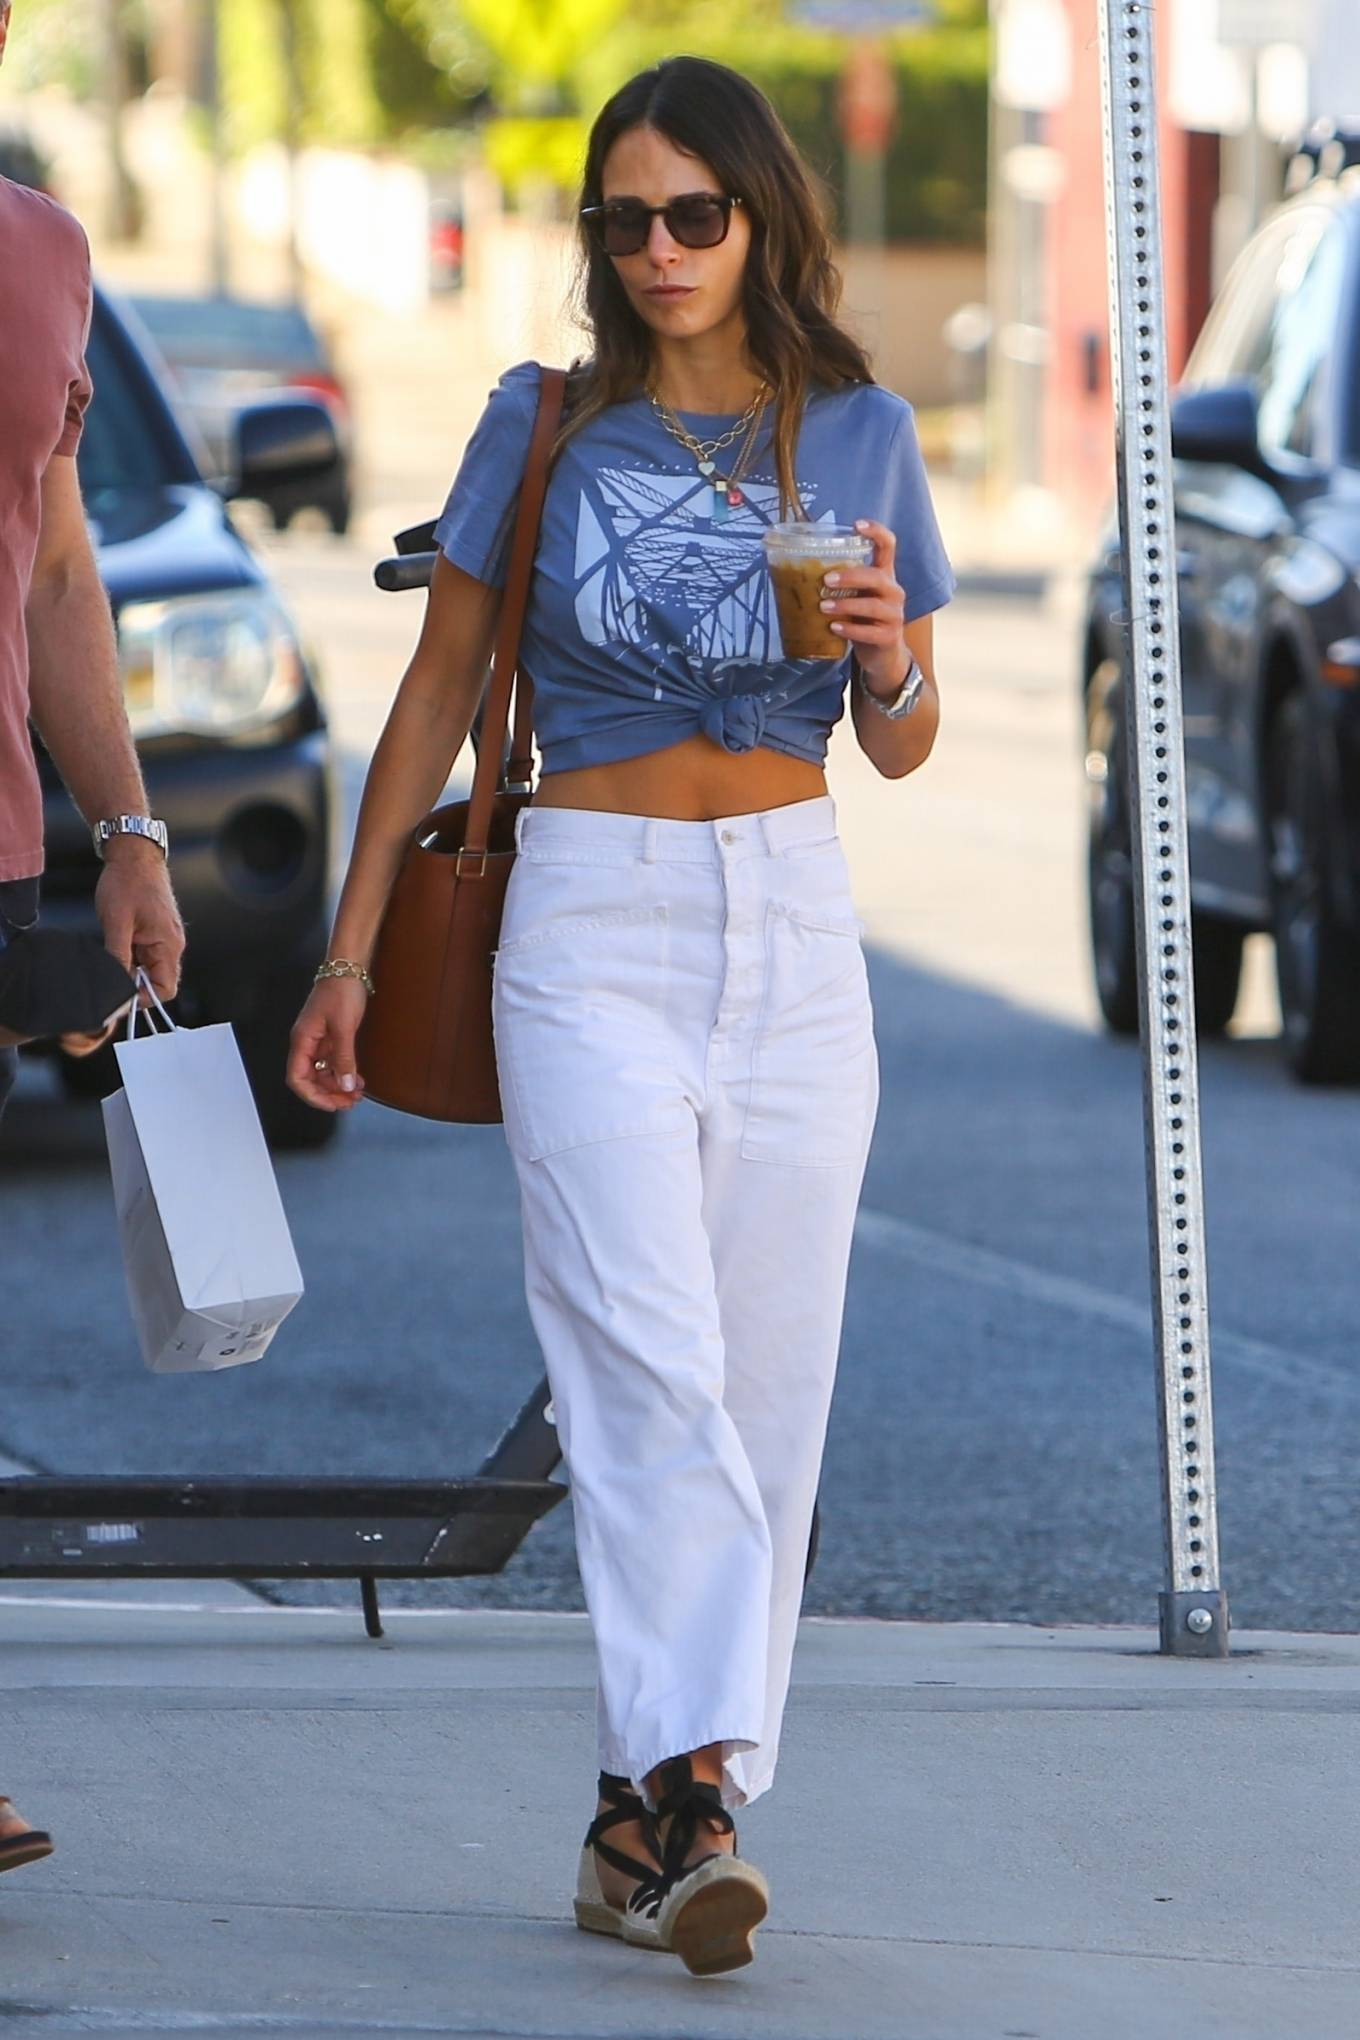 Jordana Brewster 2021 : Jordana Brewster – In a midriff-baring top out in Brentwood-06